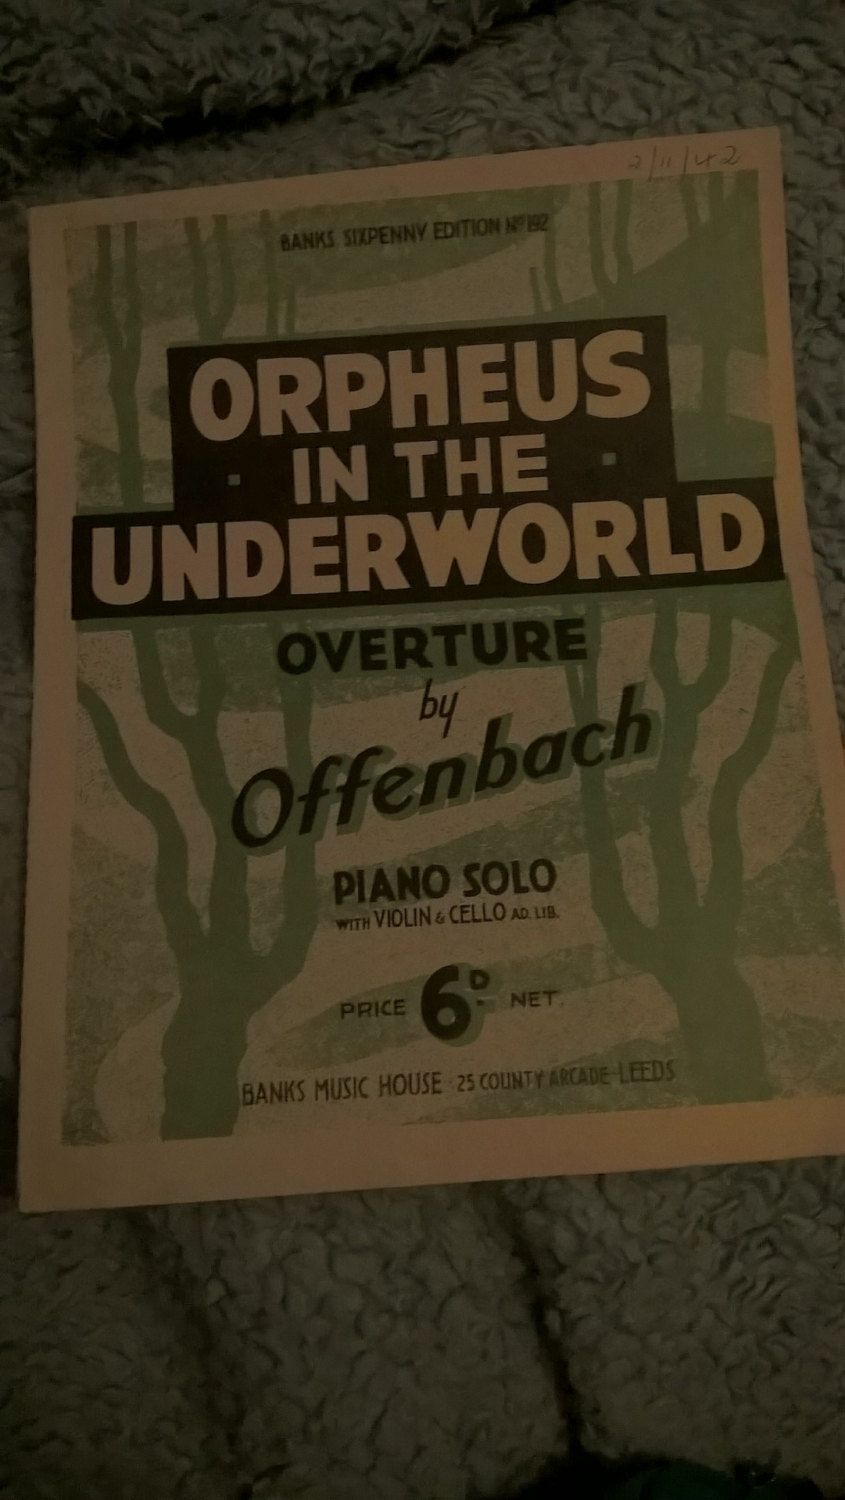 Banks Sixpenny Edition No 192 Orpheus In The Underworld Overture By Offenbach Piano Solo Overture Book Sale Underworld